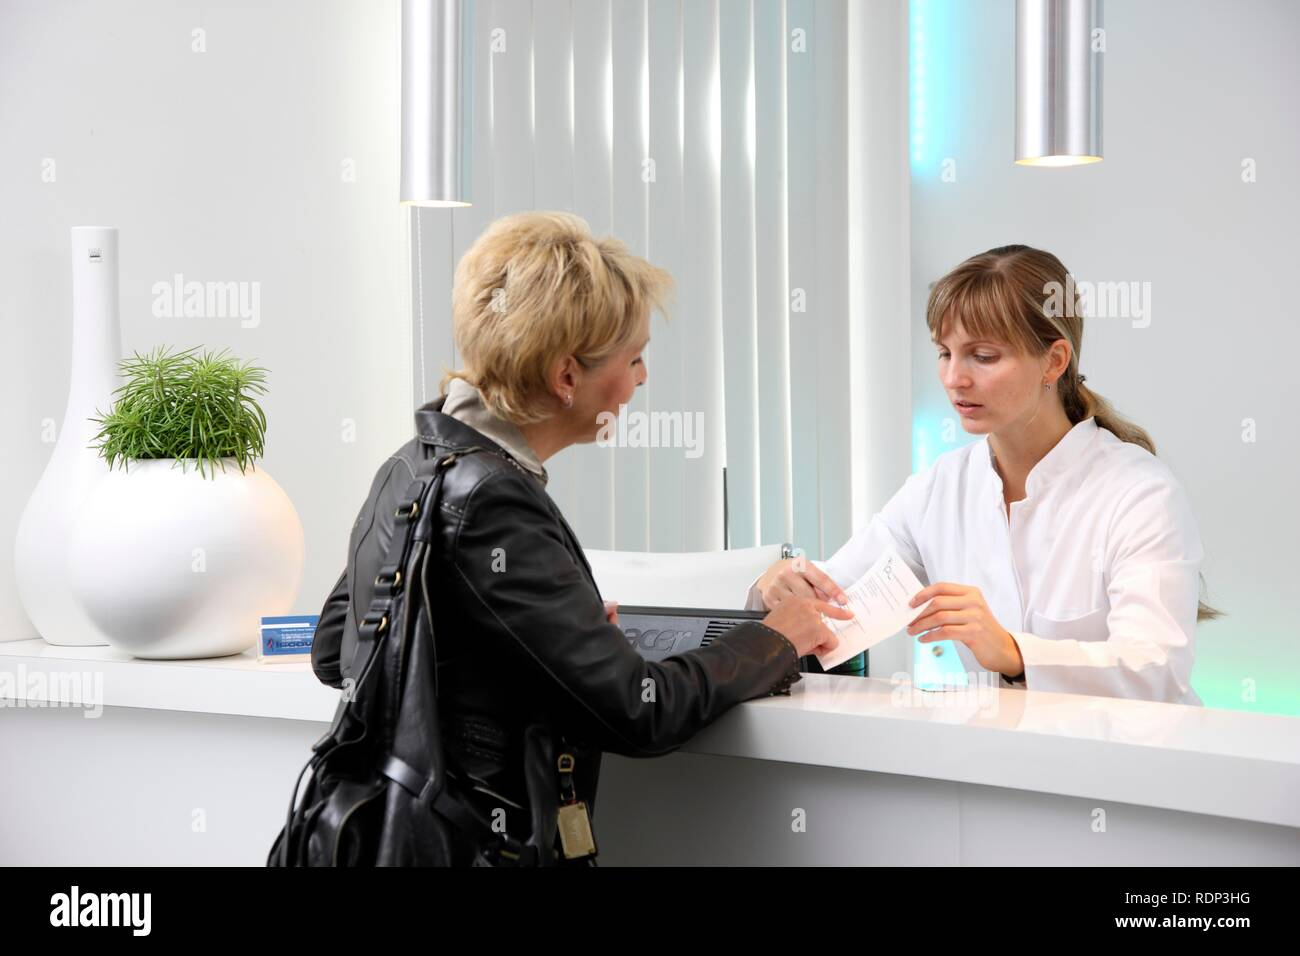 Medical practice, patient is greeted by a medical secretary - Stock Image